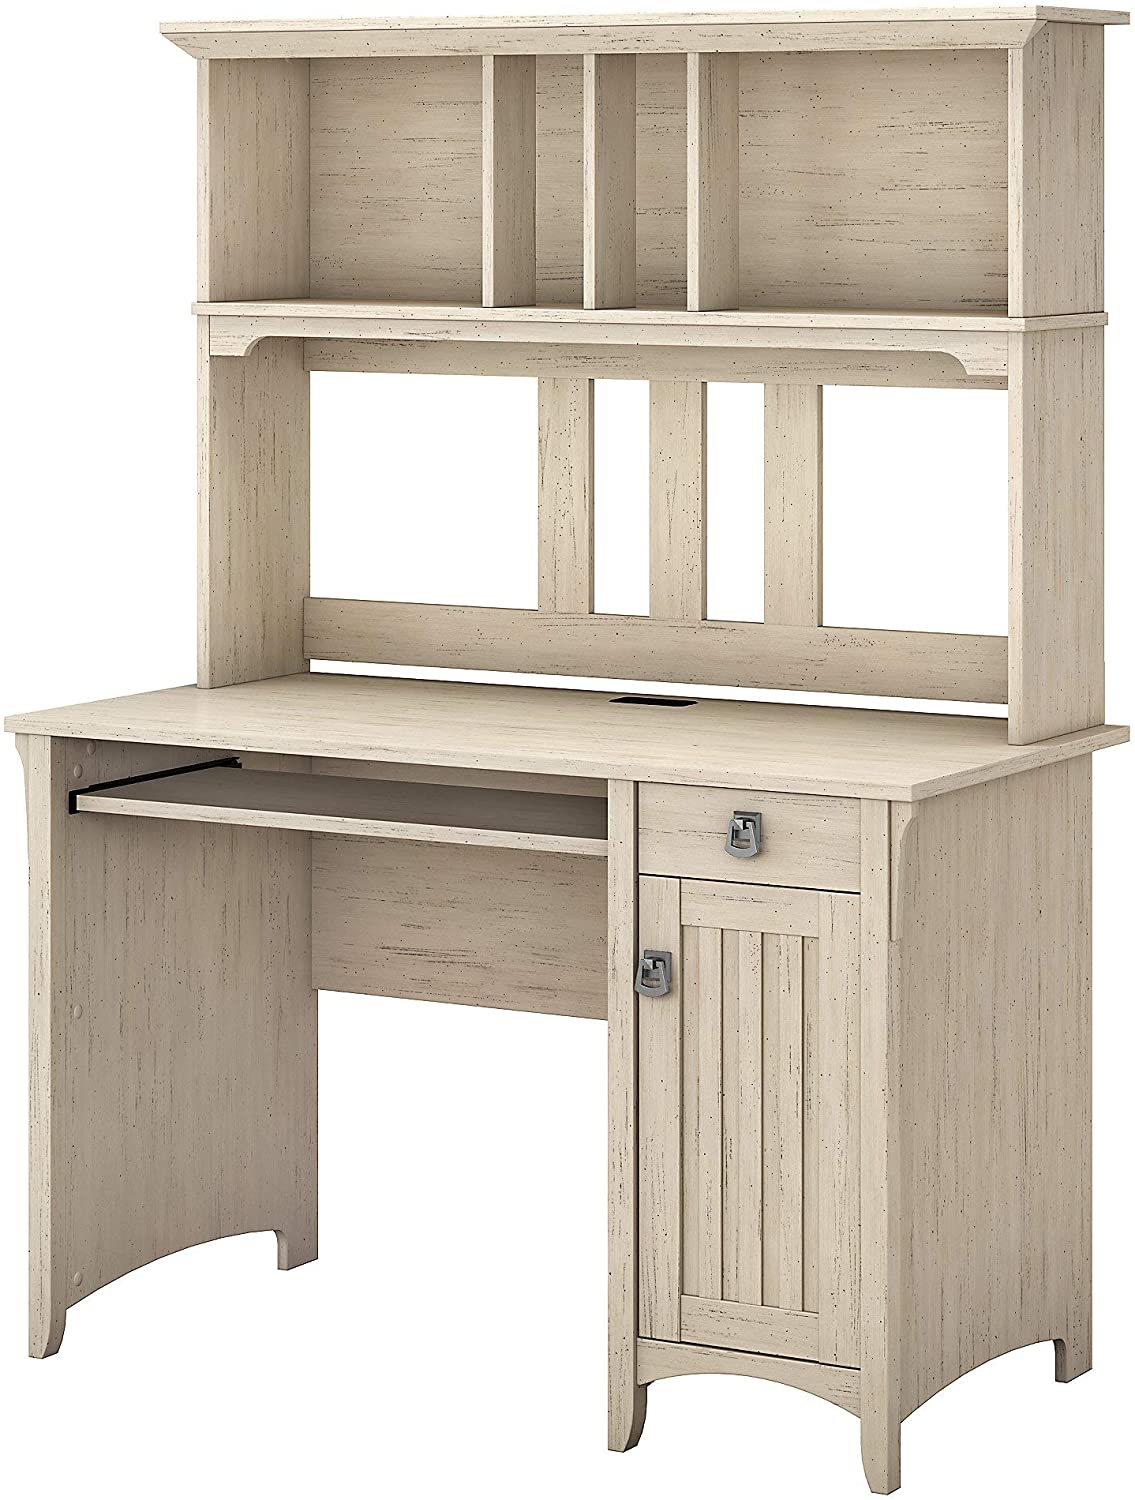 Bush Furniture Salinas Mission Desk and Hutch in Antique White